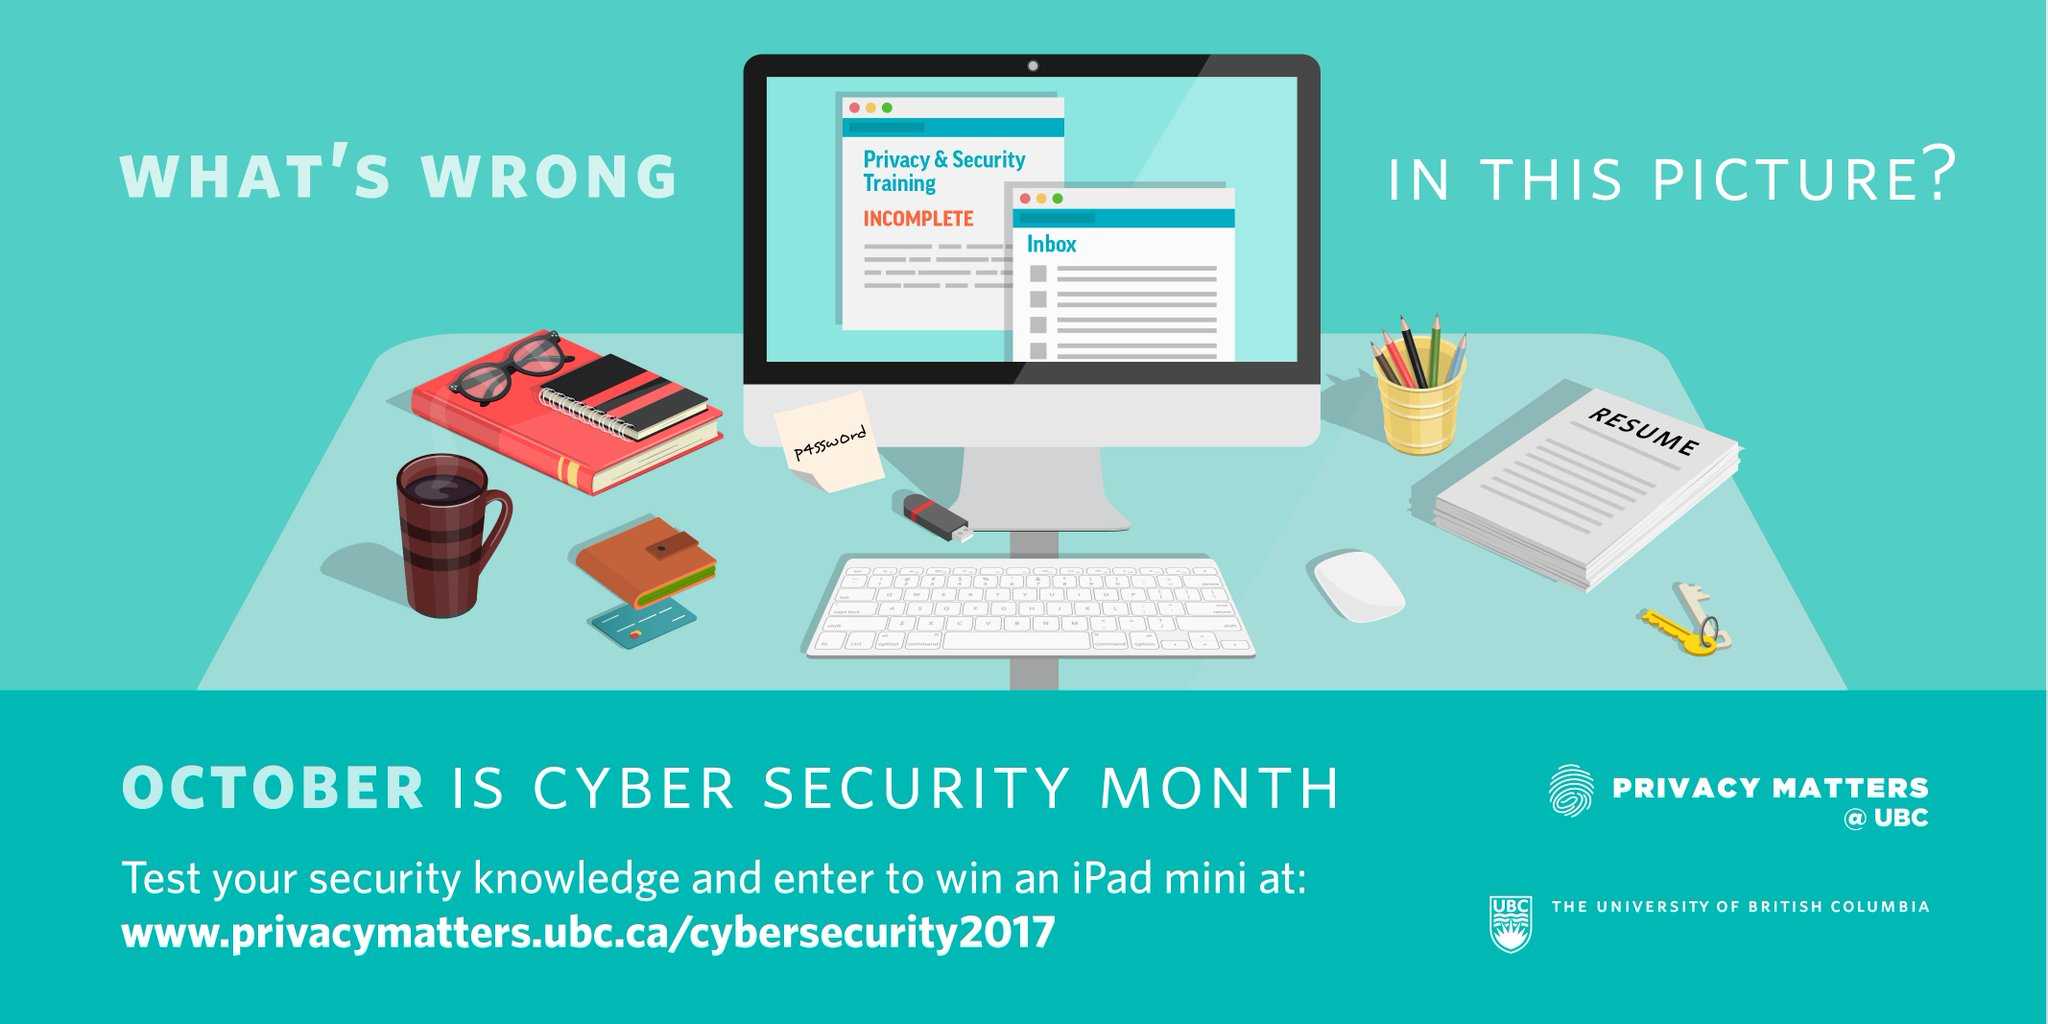 Clean Desk Policy Template UBC On Twitter October Is Cyber Security Awareness Month UBC Faculty Staff Would You Pass